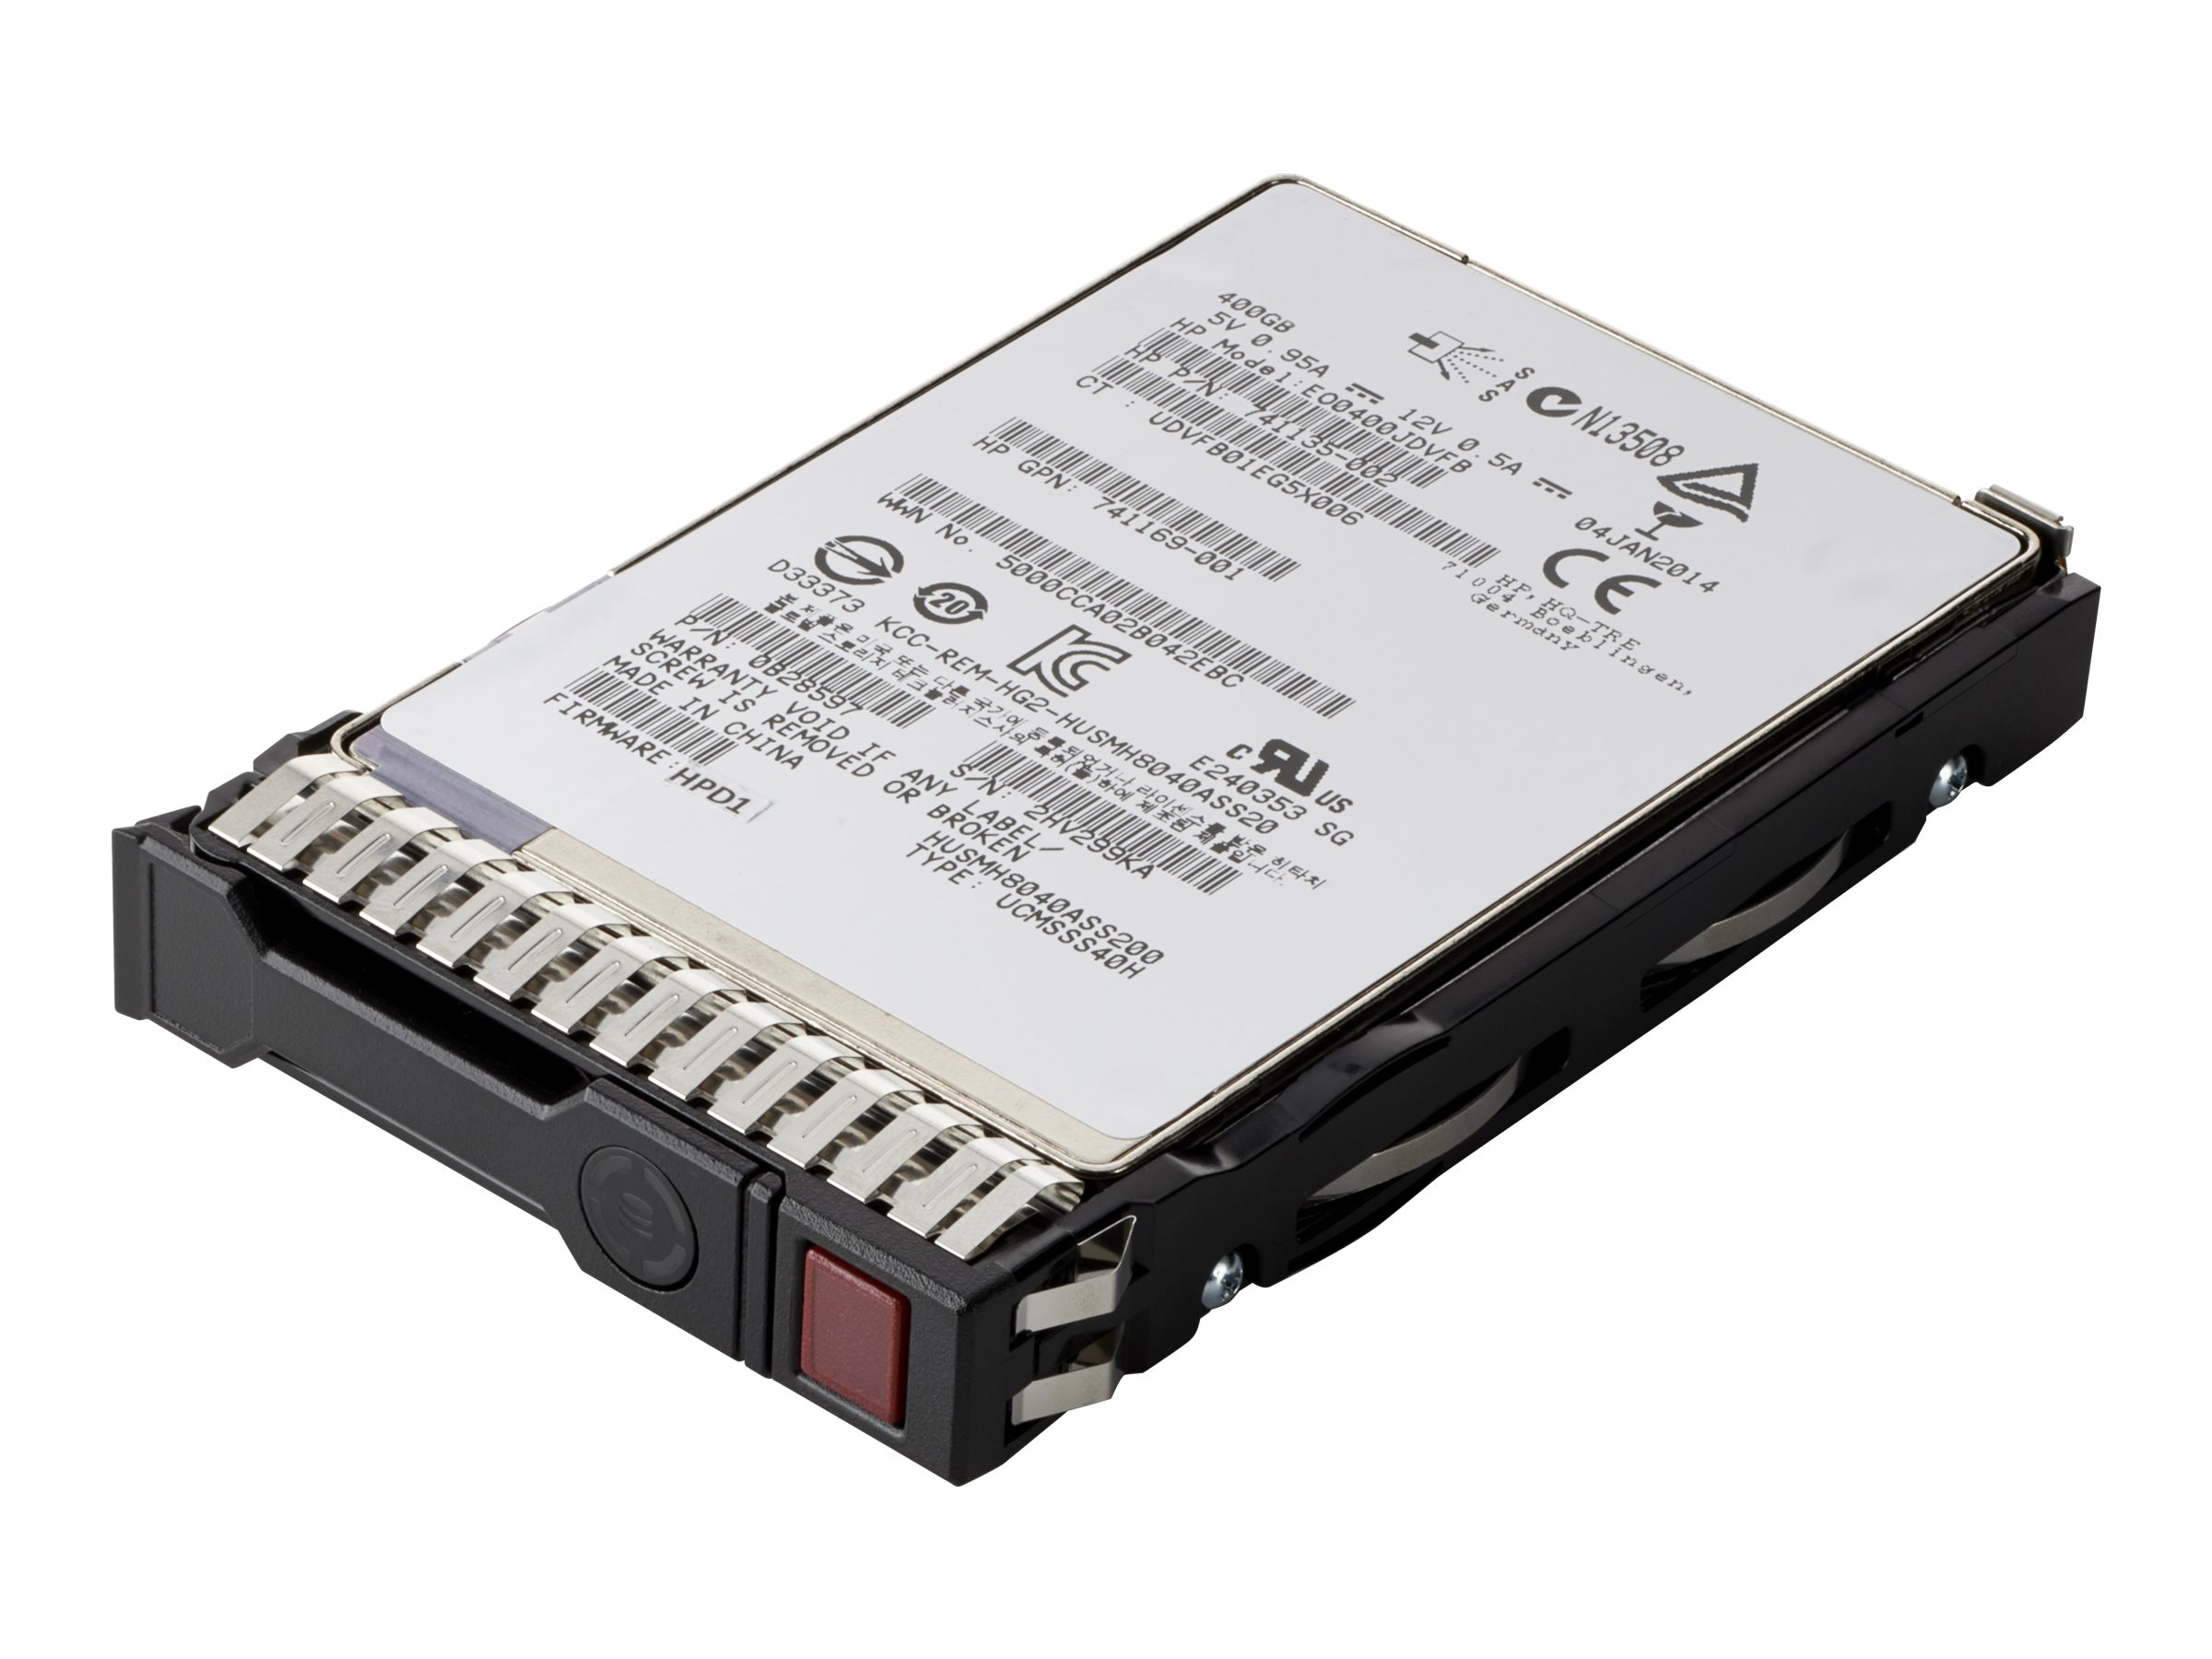 HPE Mixed Use - solid state drive - 960 GB - SATA 6Gb/s